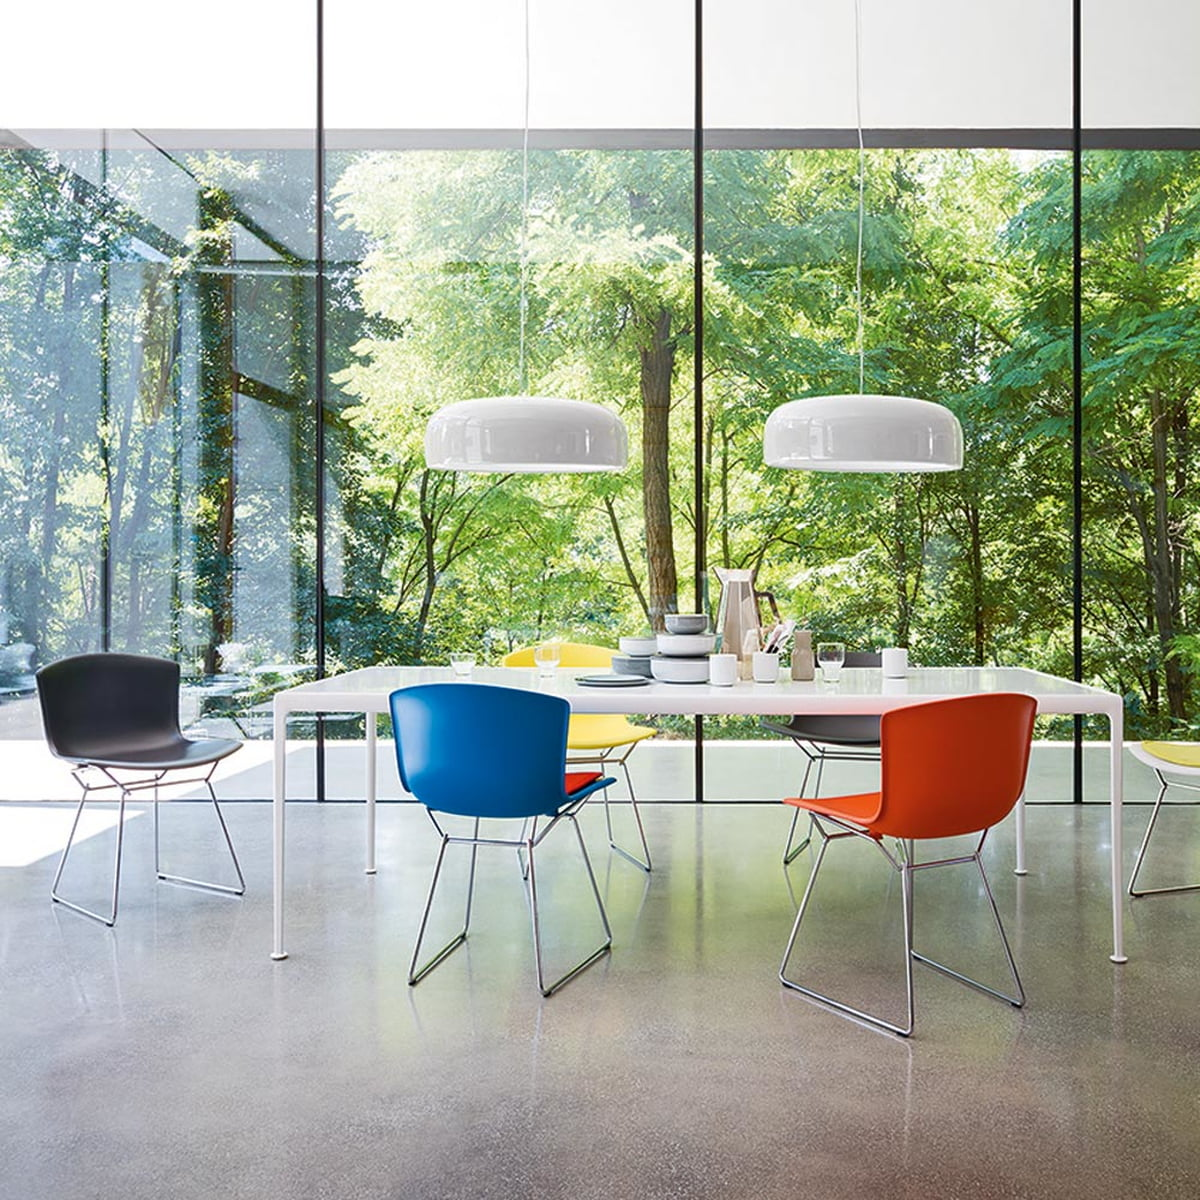 Bertoia chair dining room - Knoll Bertoia Plastic Chair